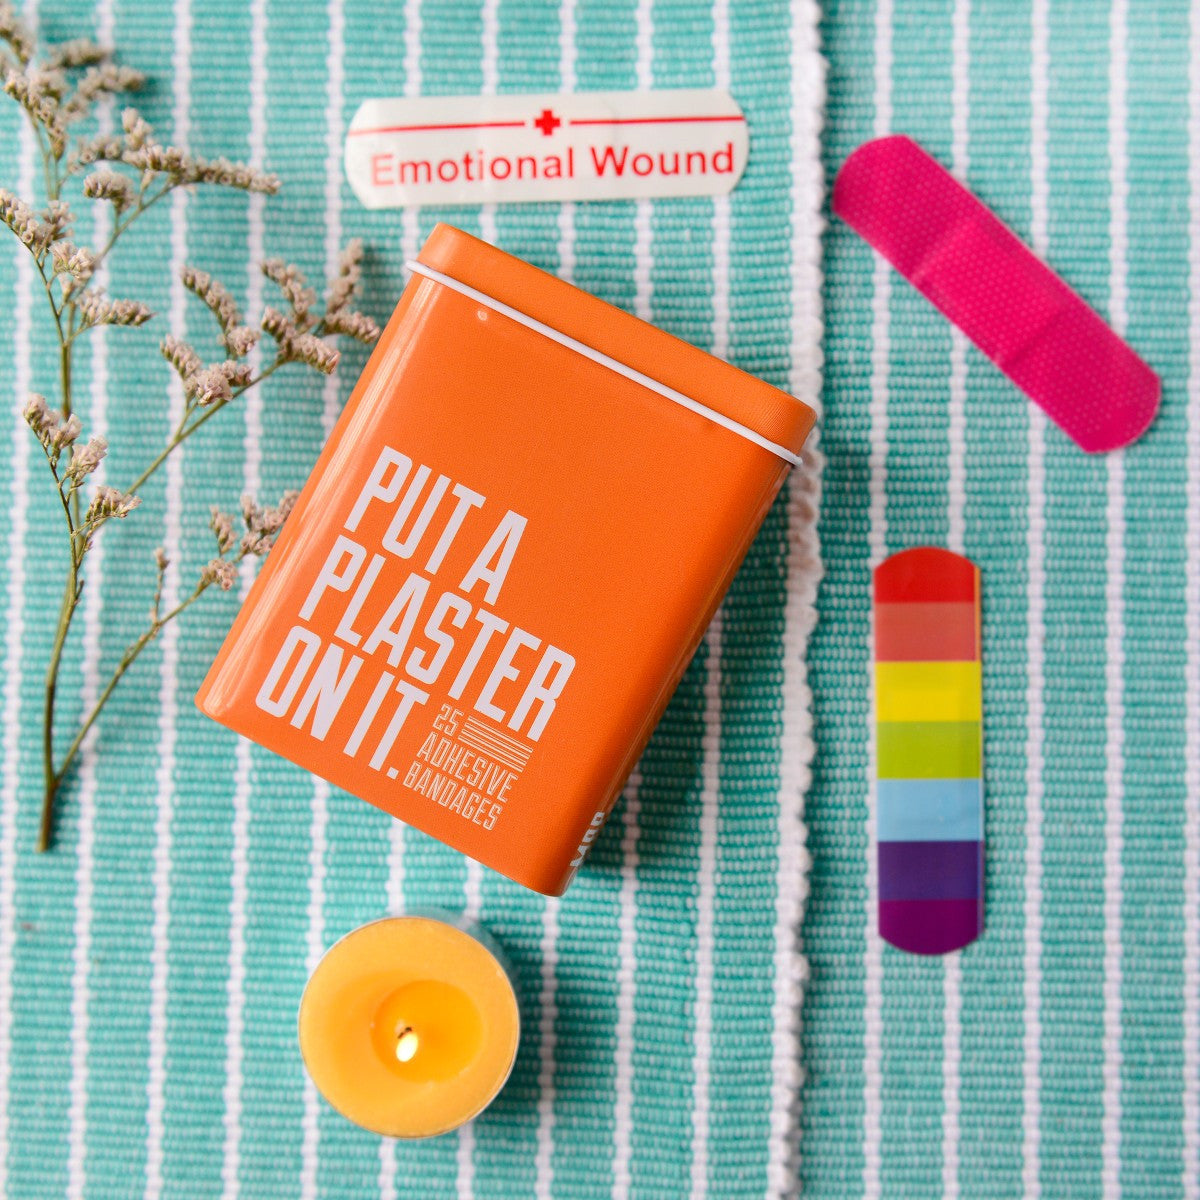 Put a Plaster On It: Band-Aids - Orange